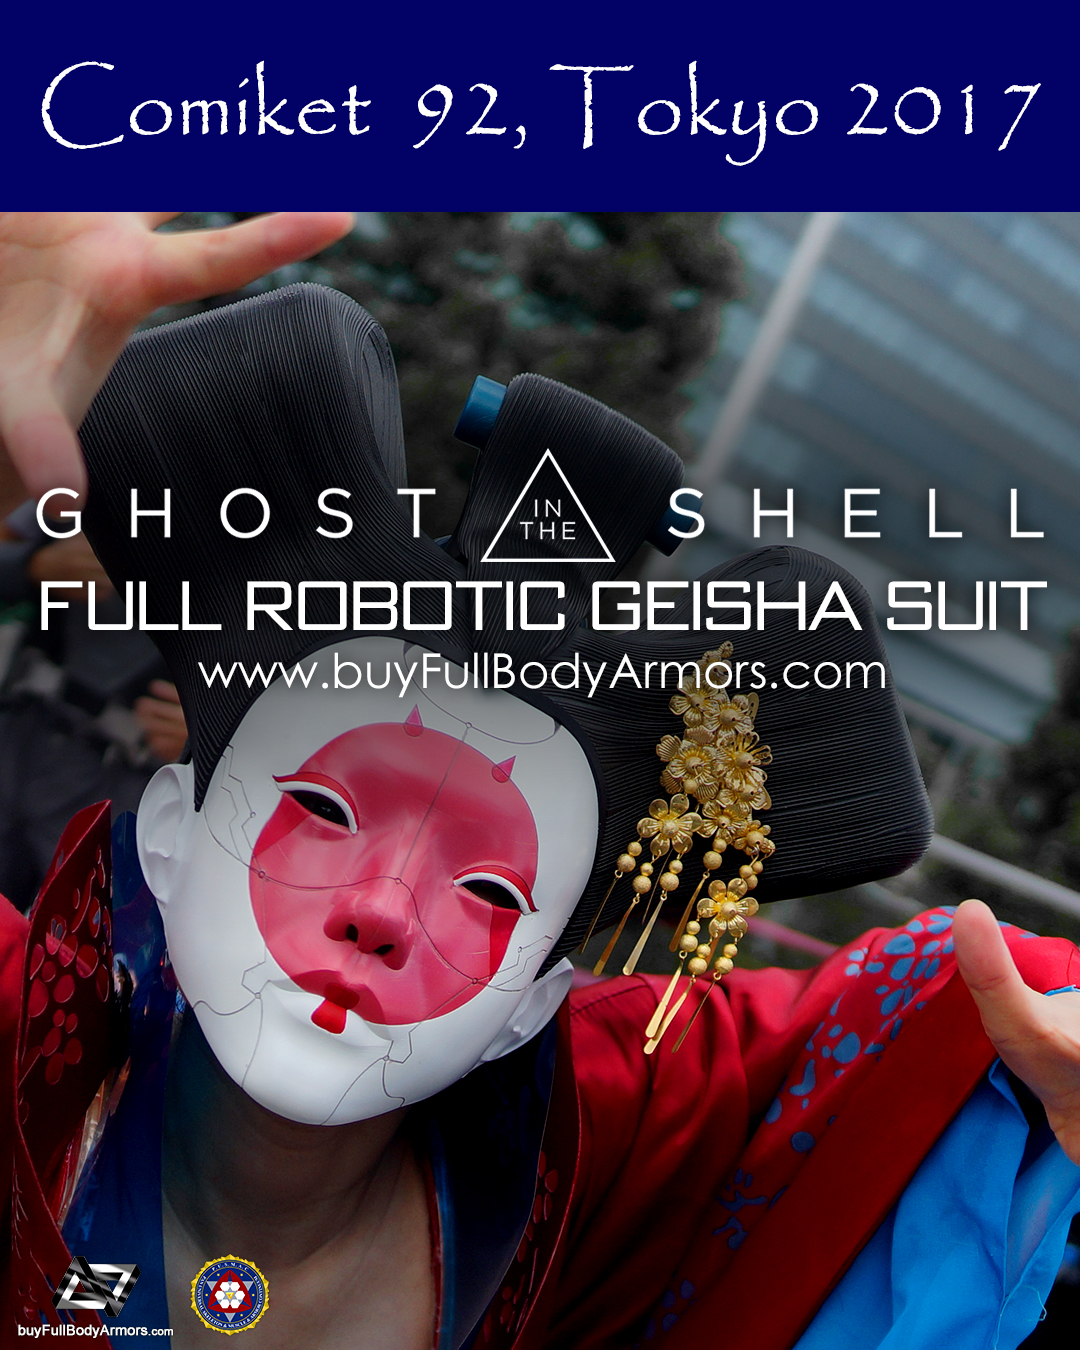 [Comiket 92, Tokyo 2017] The Wearable Robotic Geisha Full Suit from the Movie Ghost in the Shell 2017 5